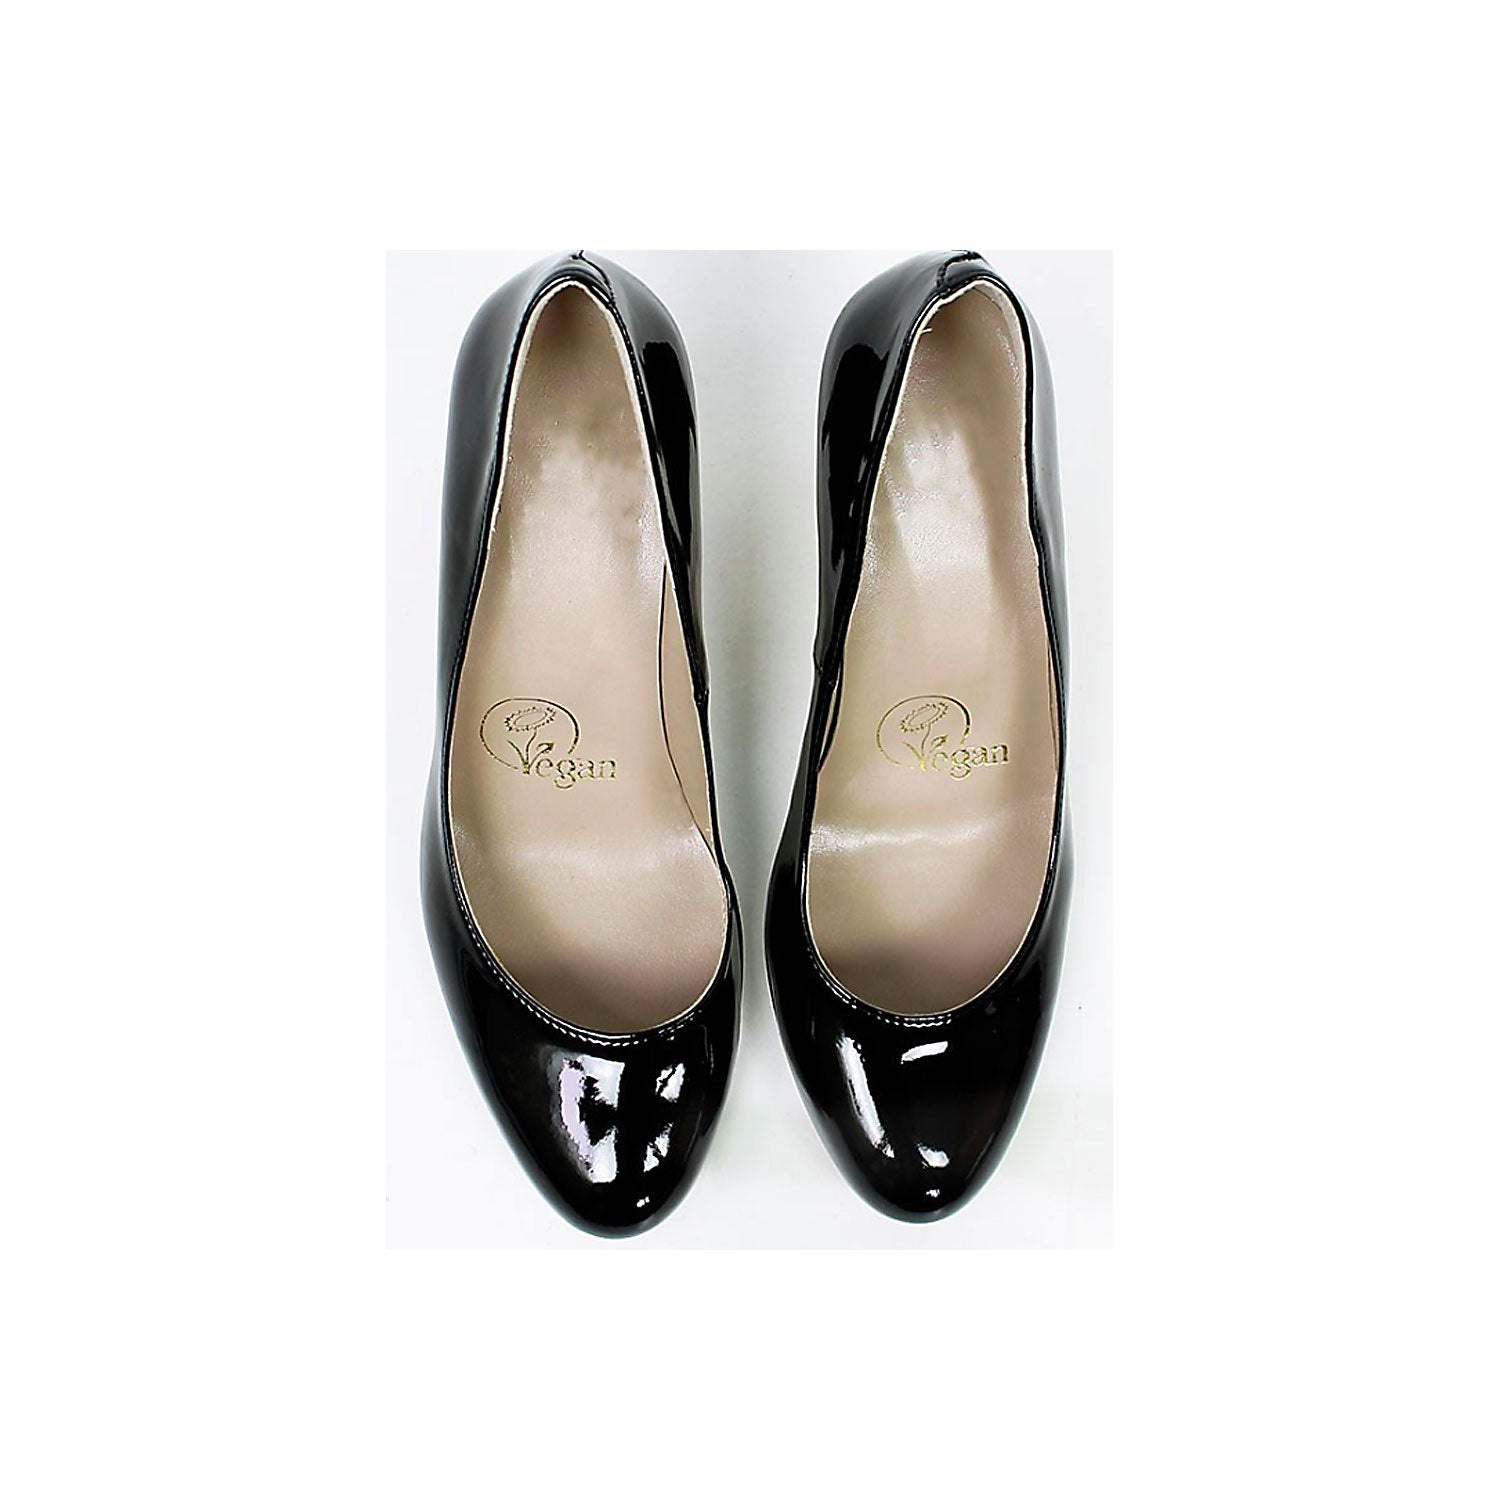 City Courts patent black